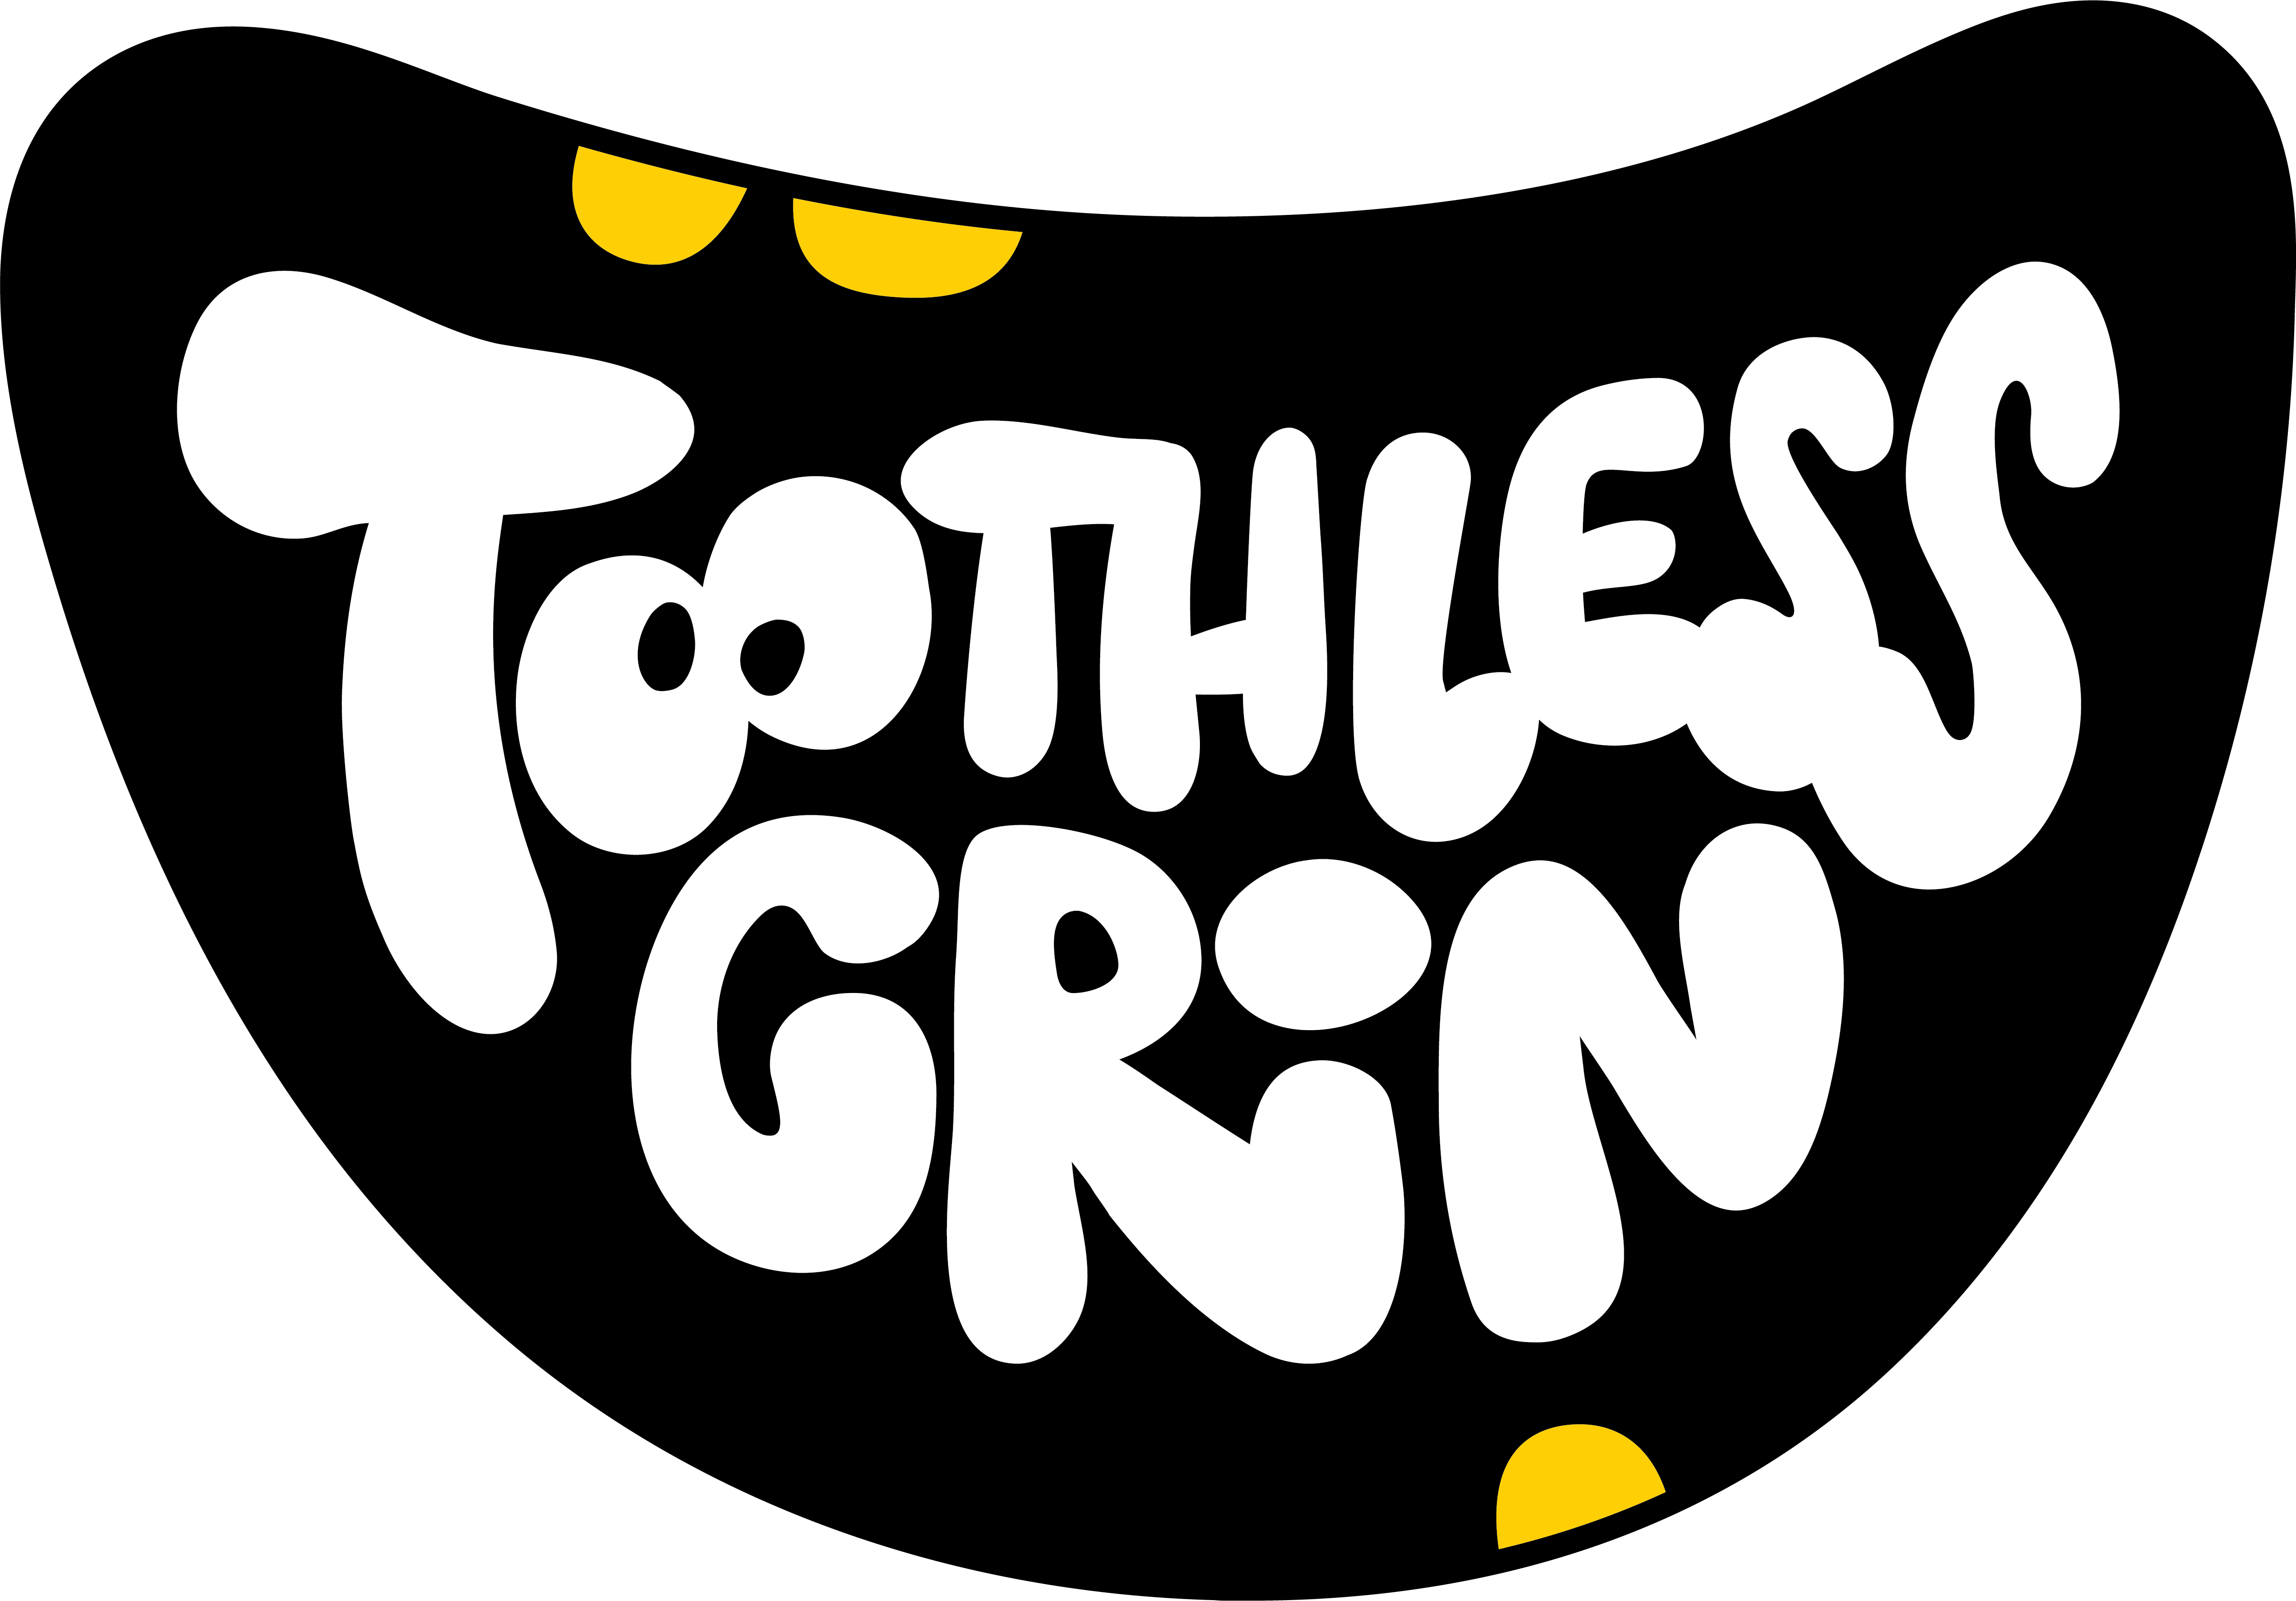 Toothless Grin Entertainment Limited